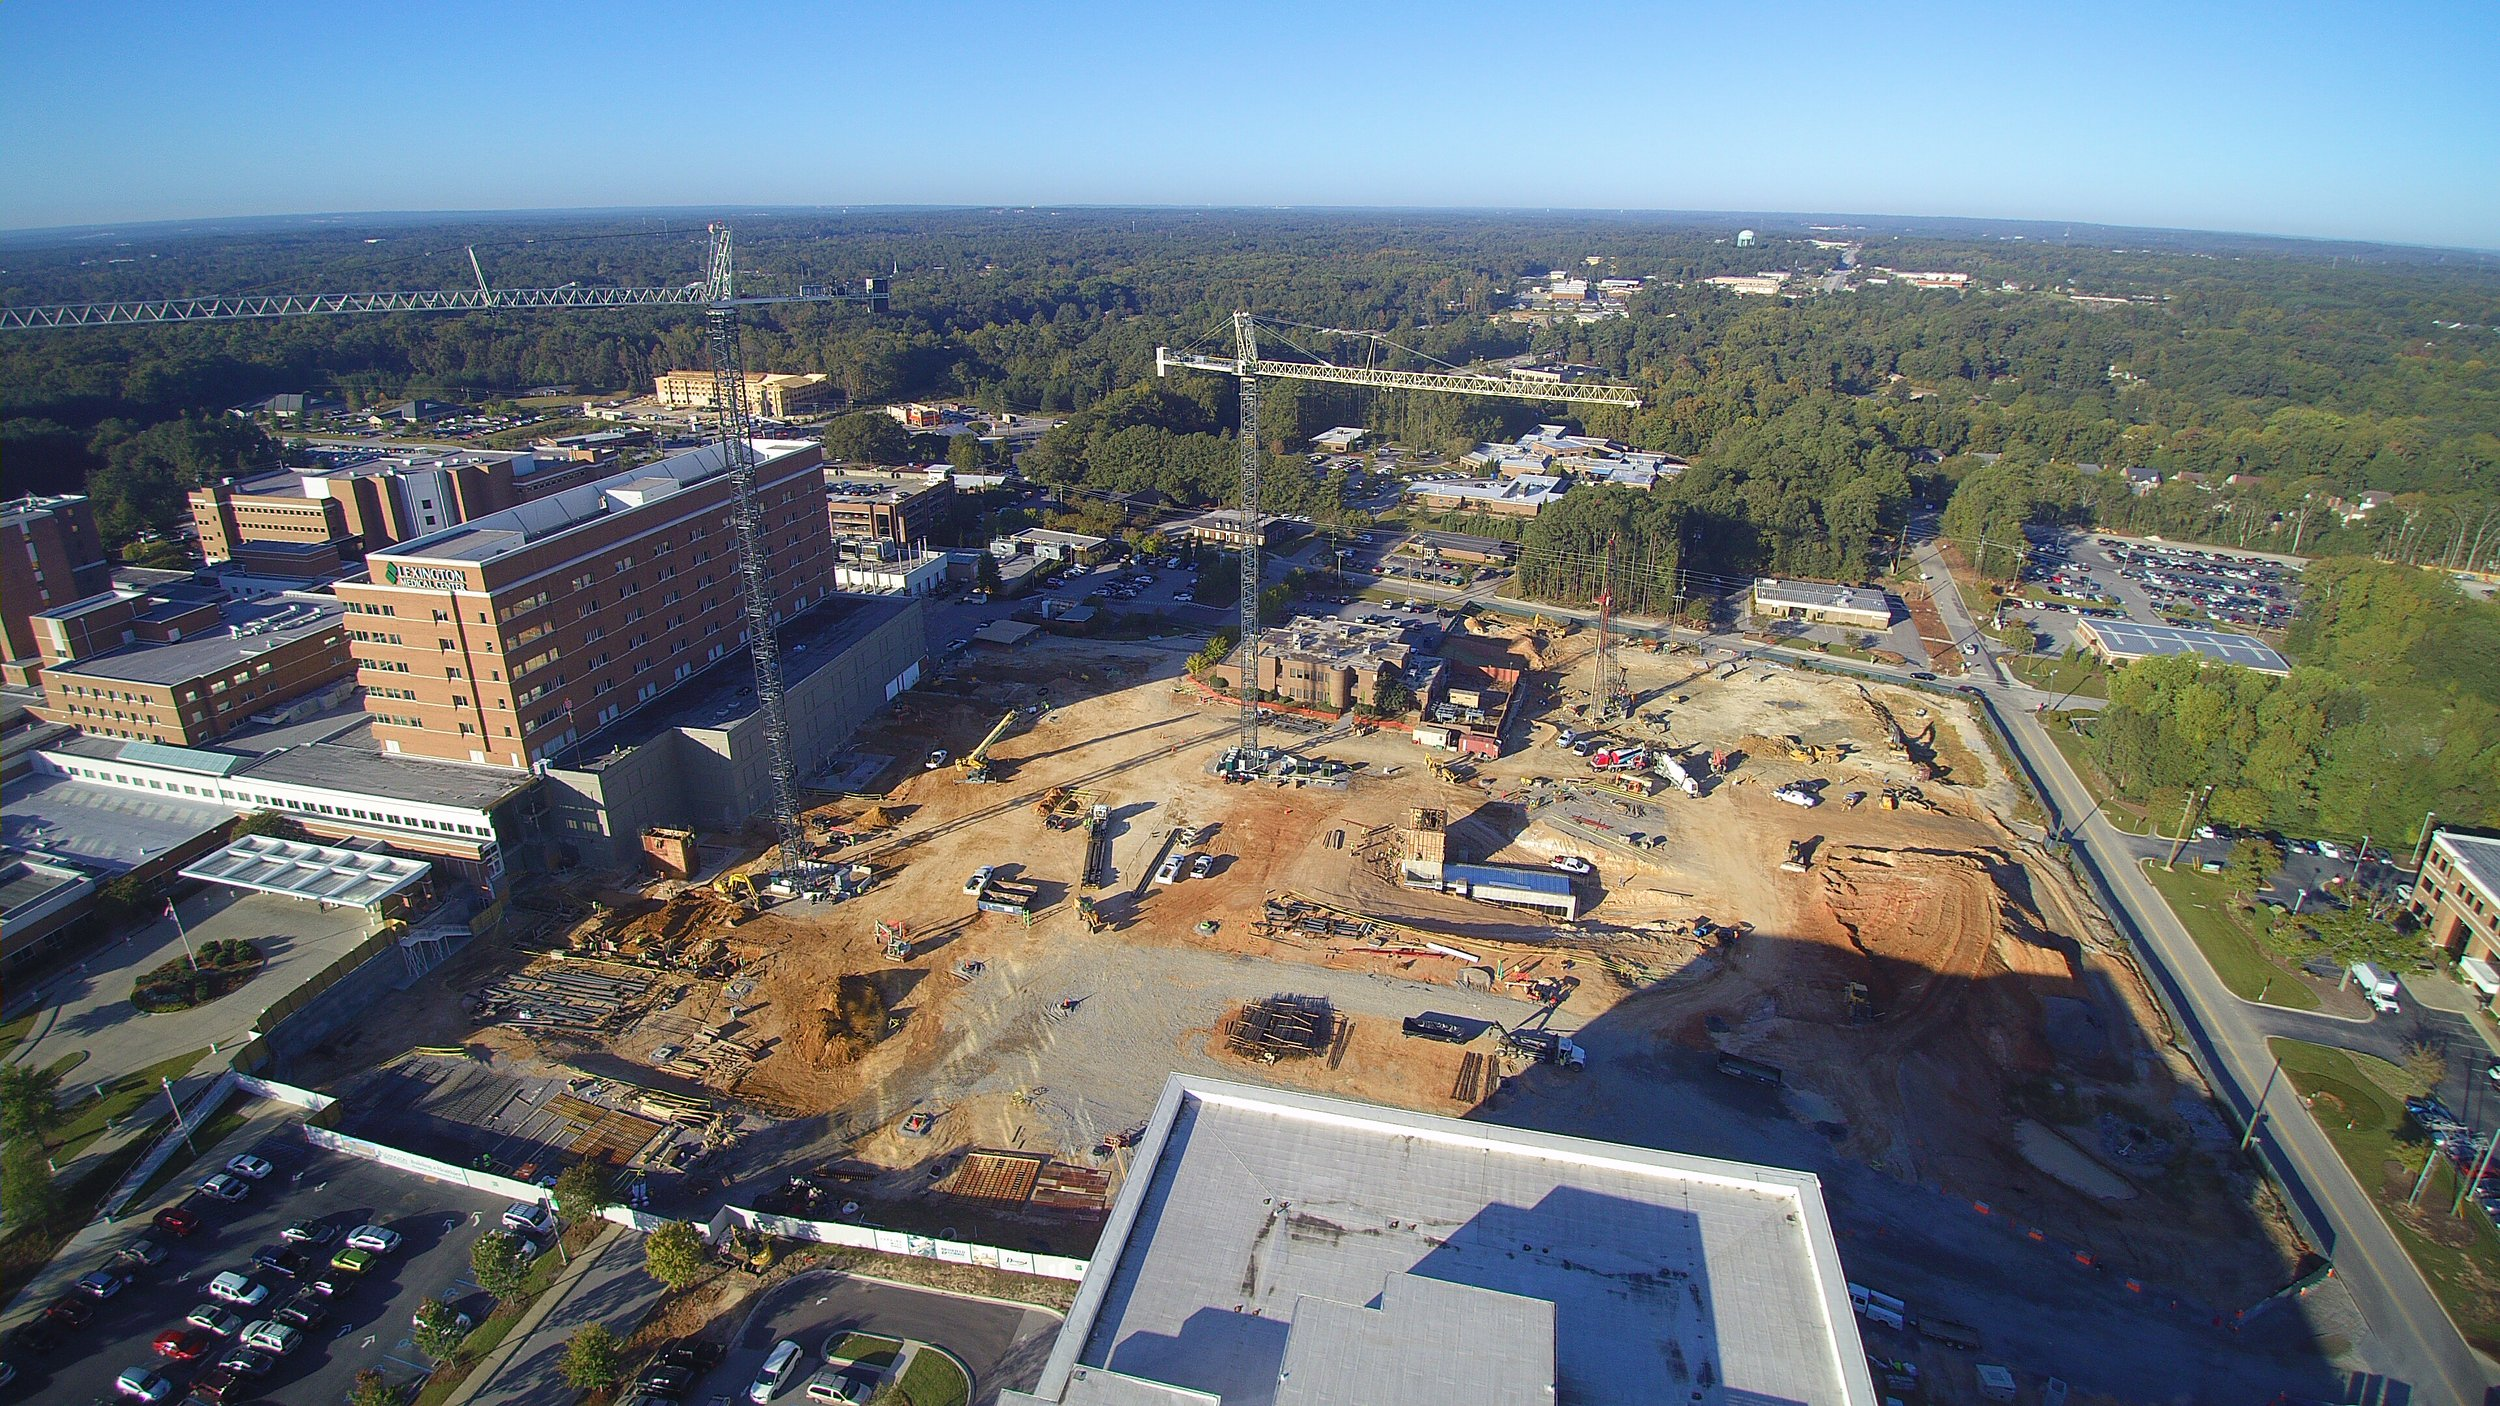 Tower Project Aerial 10-12-16 Pic #2.jpg